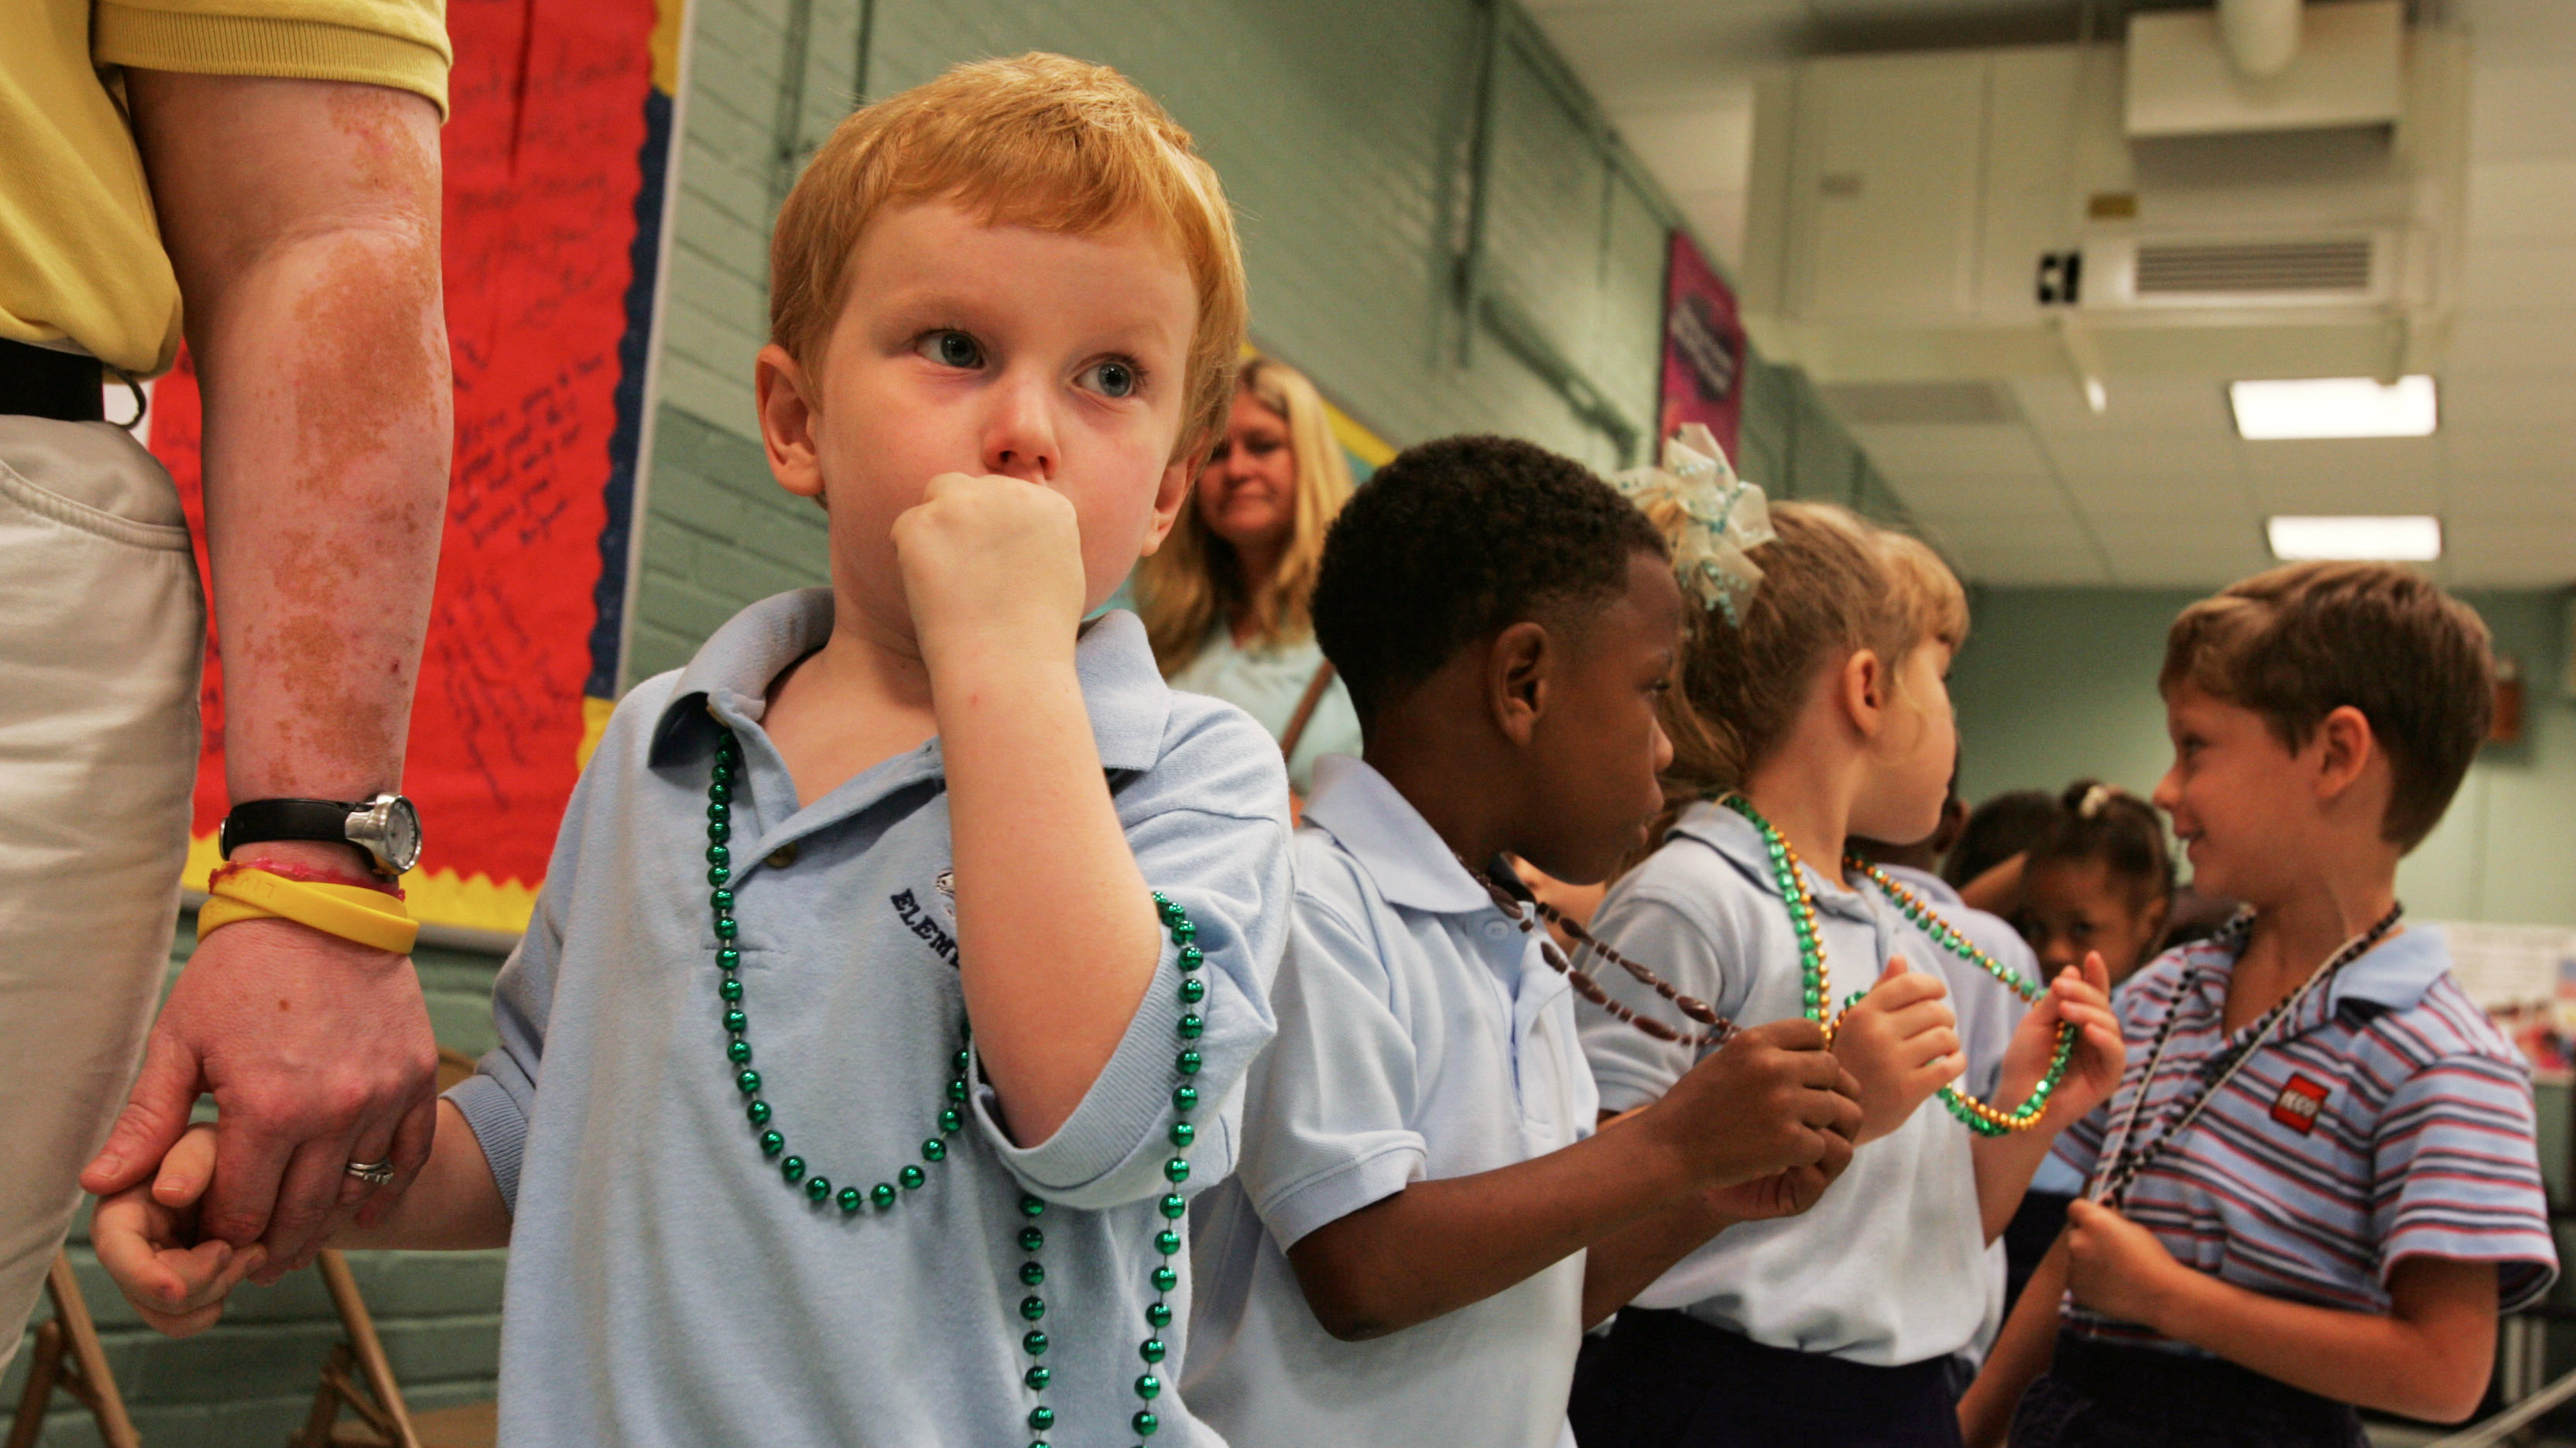 Pre-schooler Cecil Smith (L), 4, holds the hand of a teacher's assistant as he prepares to go to class after he and classmates were given Mardi Gras beads, on the first day of school since Hurricane Katrina hit over a month ago, at an elementary school in Metairie, Louisiana October 3, 2005.